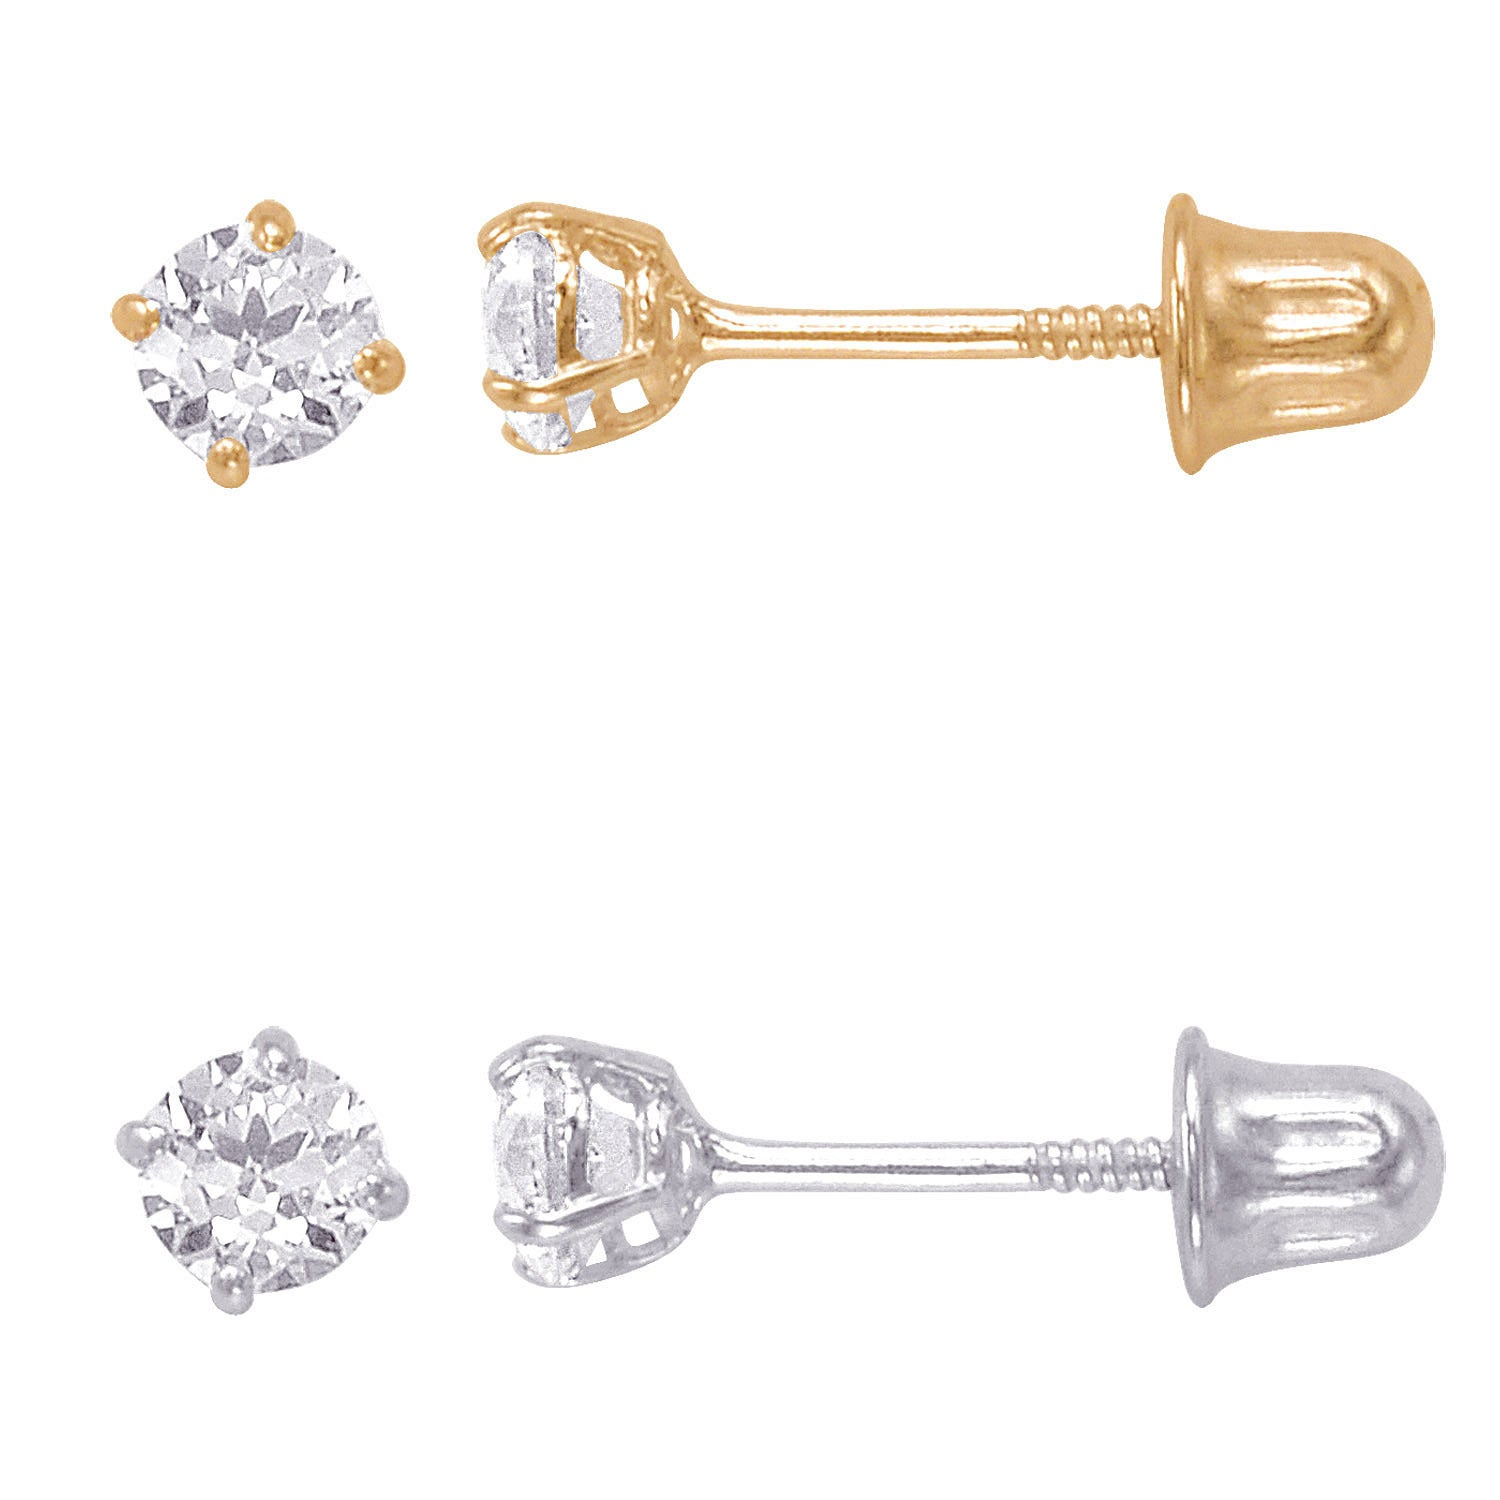 gauge post size serendipity earrings triangle in cartilage stud long piercing cz bar length products seoul extra